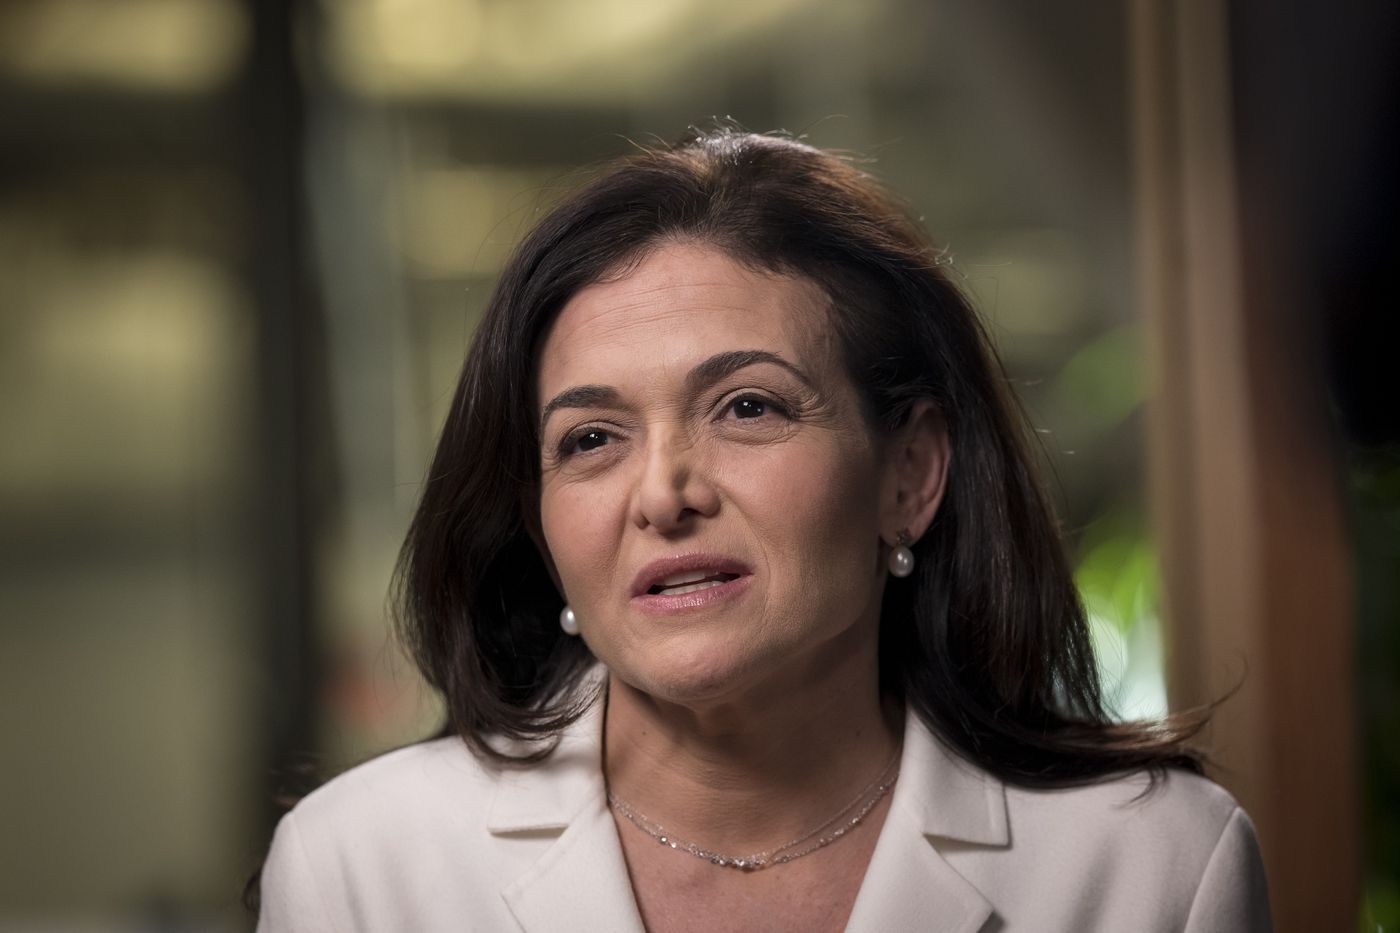 facebook coo says the largest social platform has to get better on hateful content